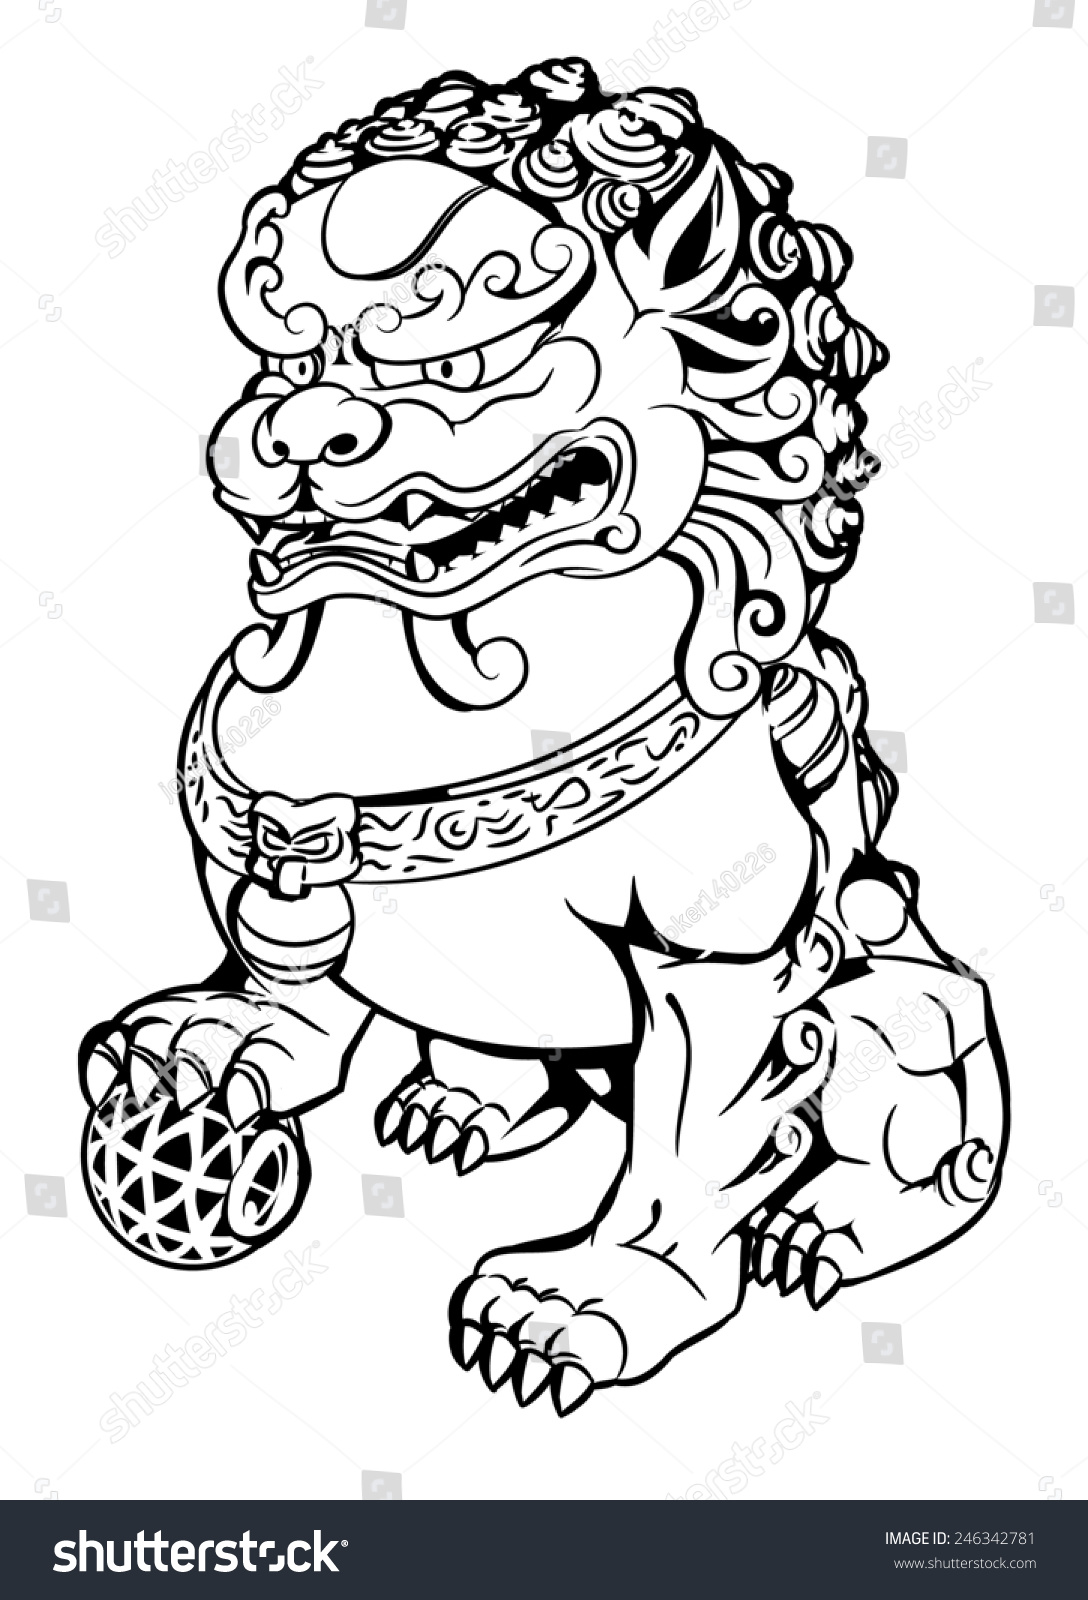 Chinese guardian lions stock vector 246342781 shutterstock for Chinese lion coloring page